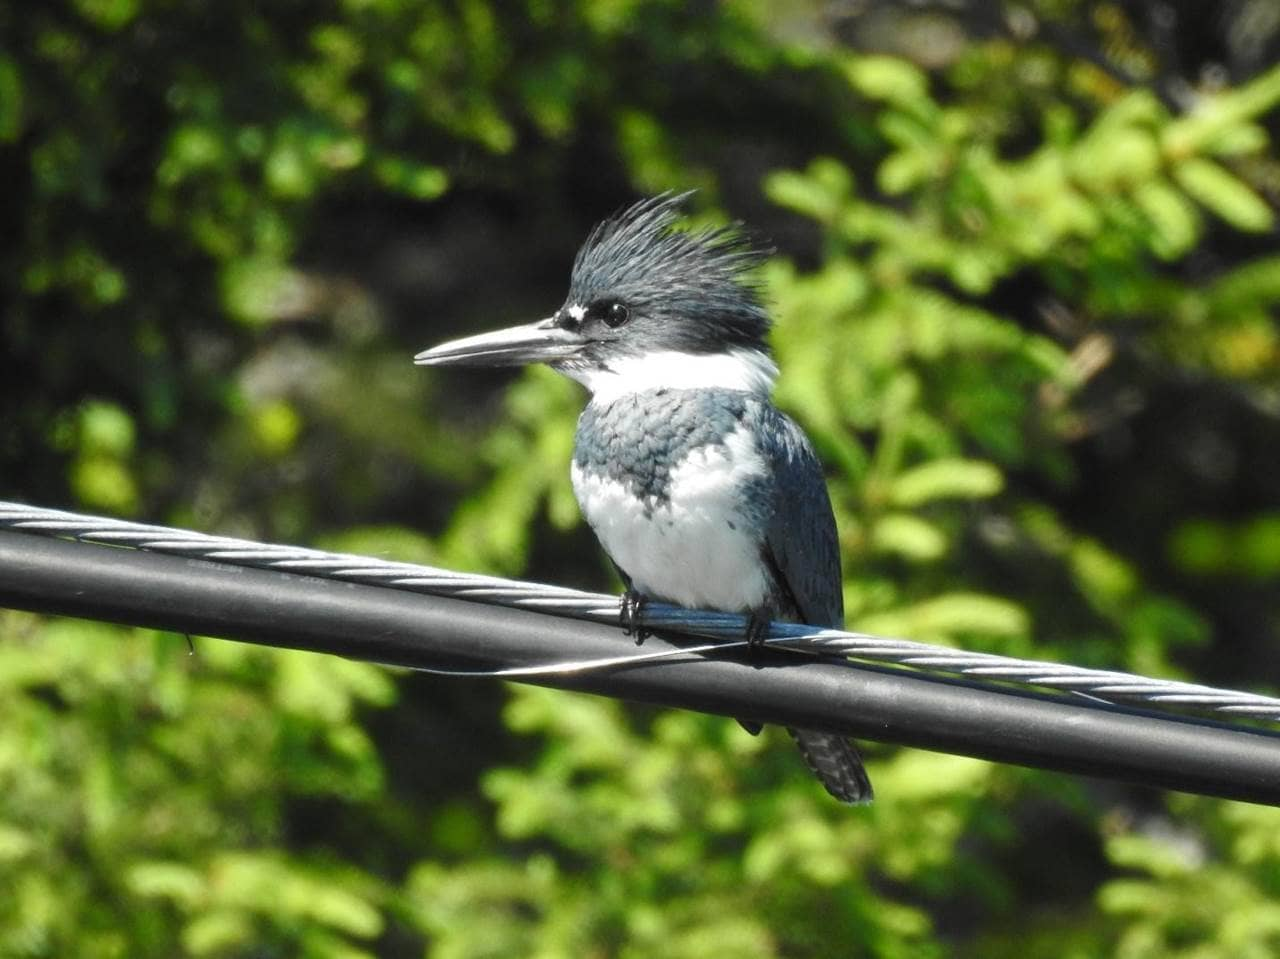 A Belted Kingfisher in Summerford, NL